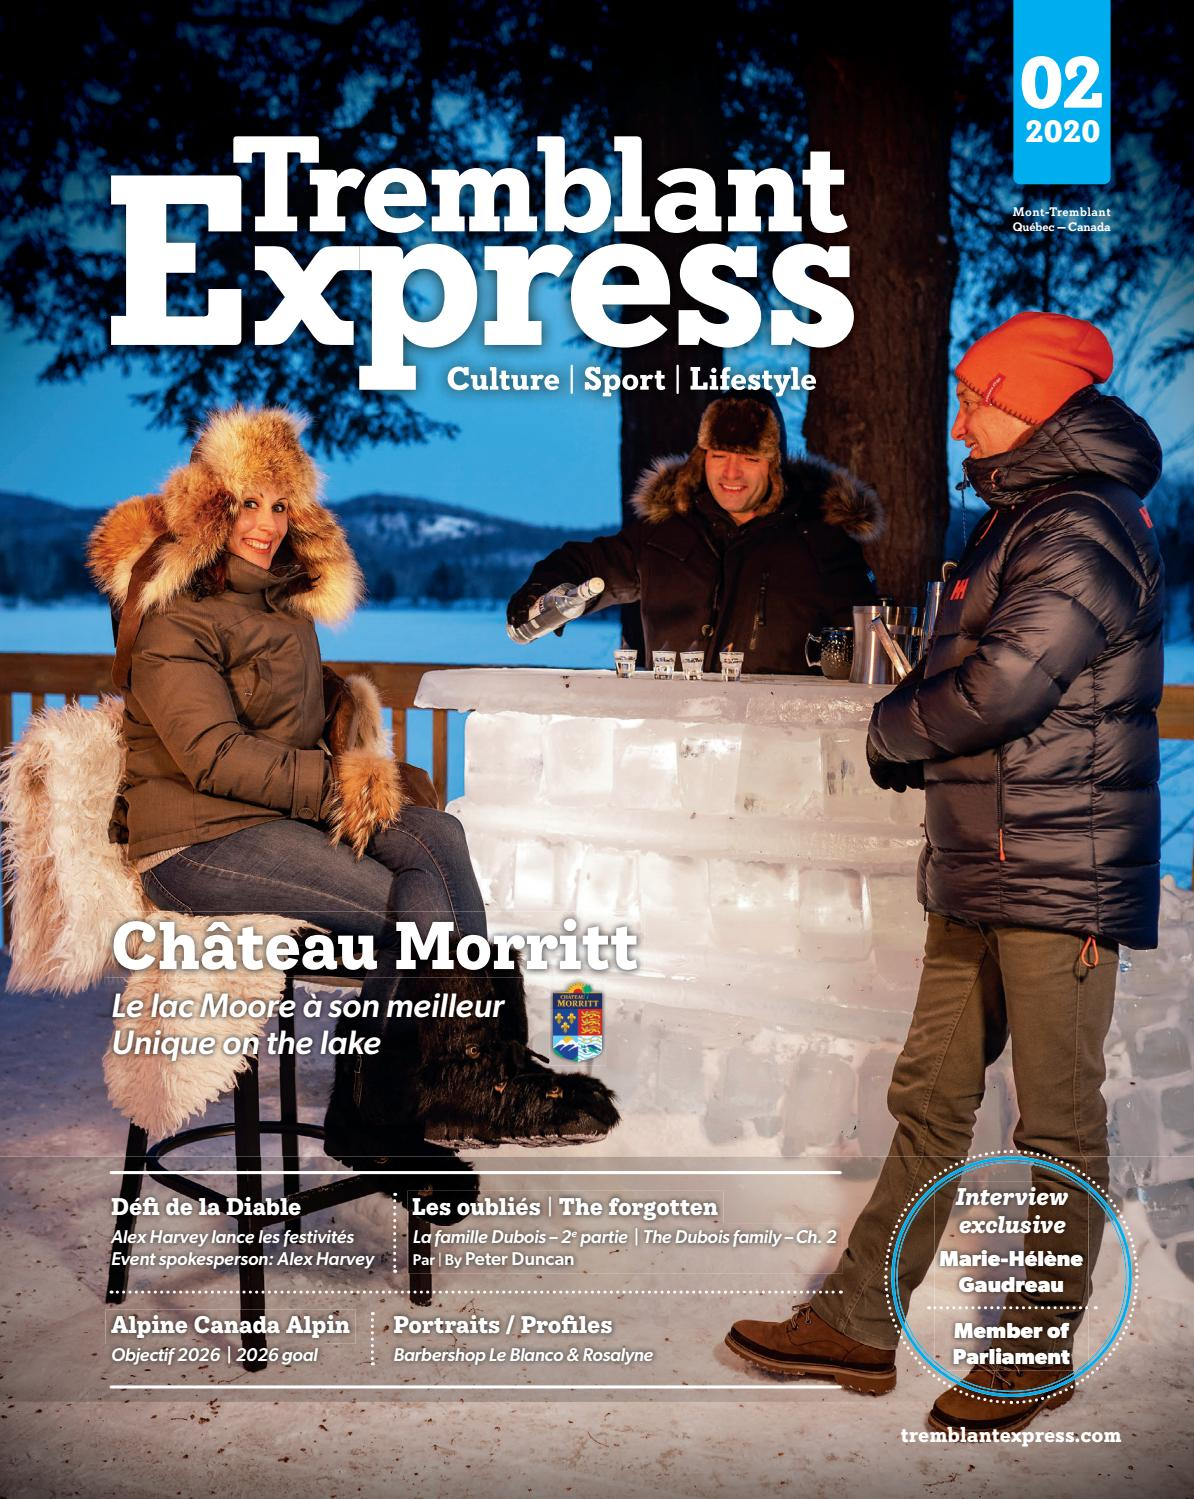 Tremblant Express février 2020 by Tremblant Express issuu